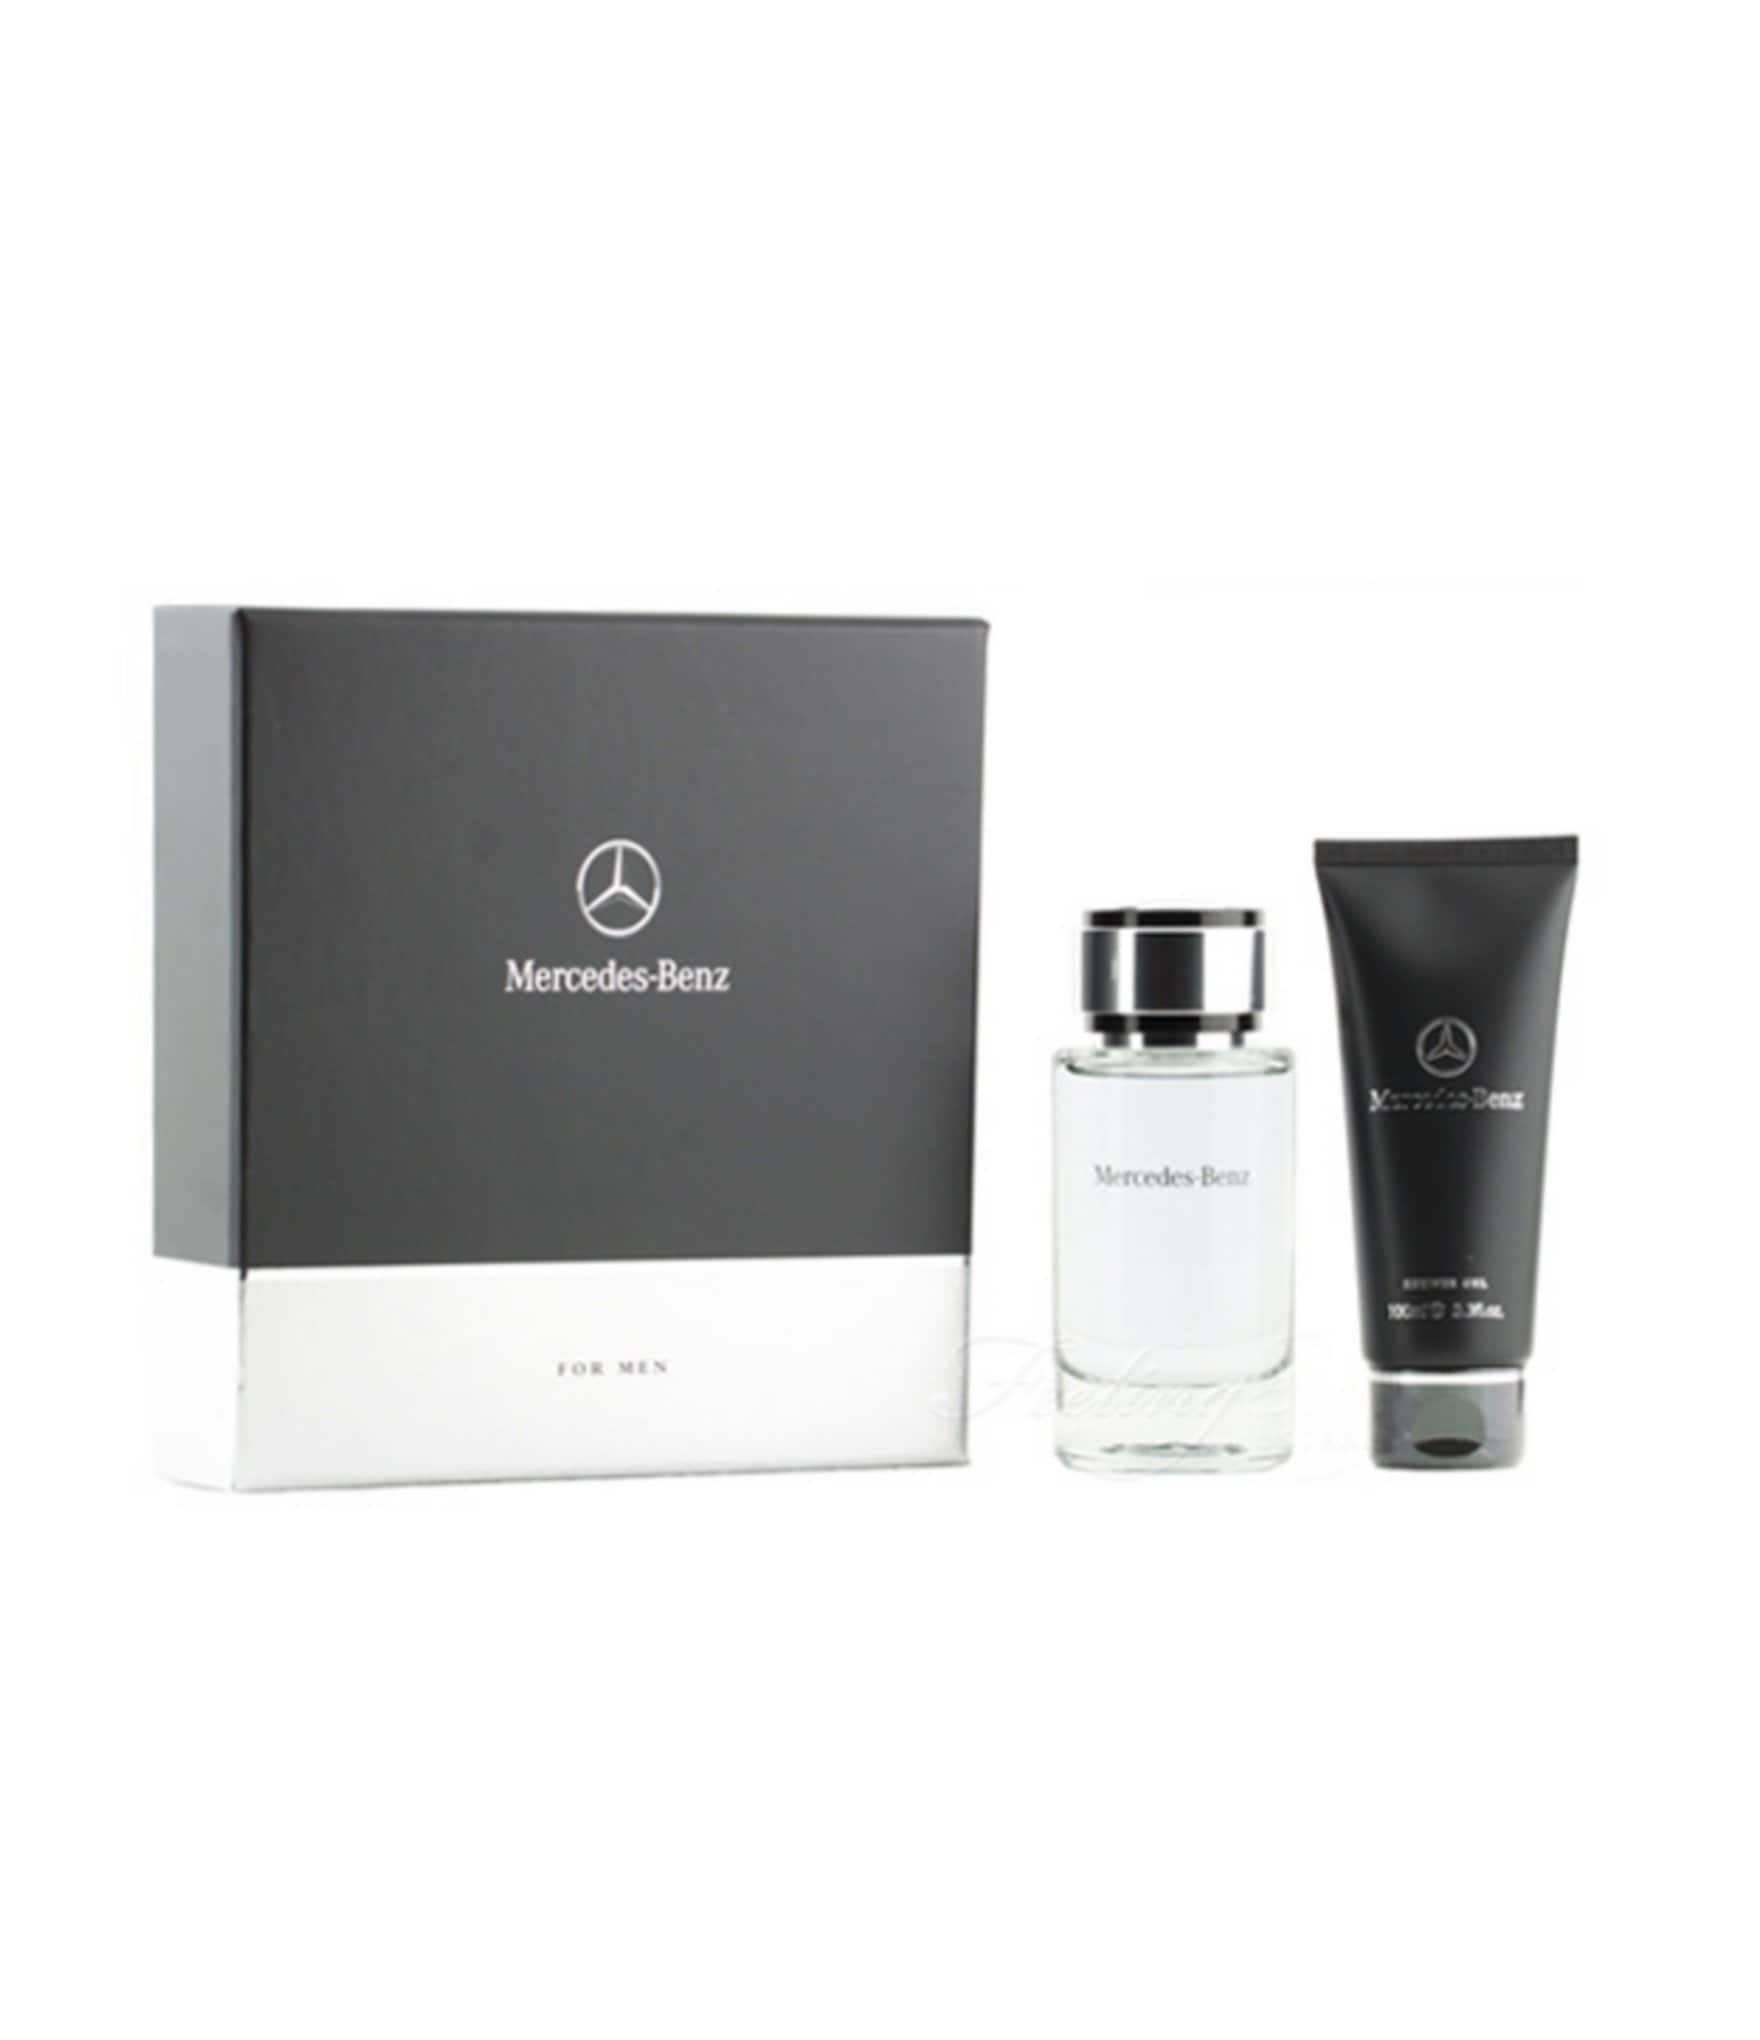 Beauty | Men's Cologne & Grooming | Gift Sets | Dillards.com